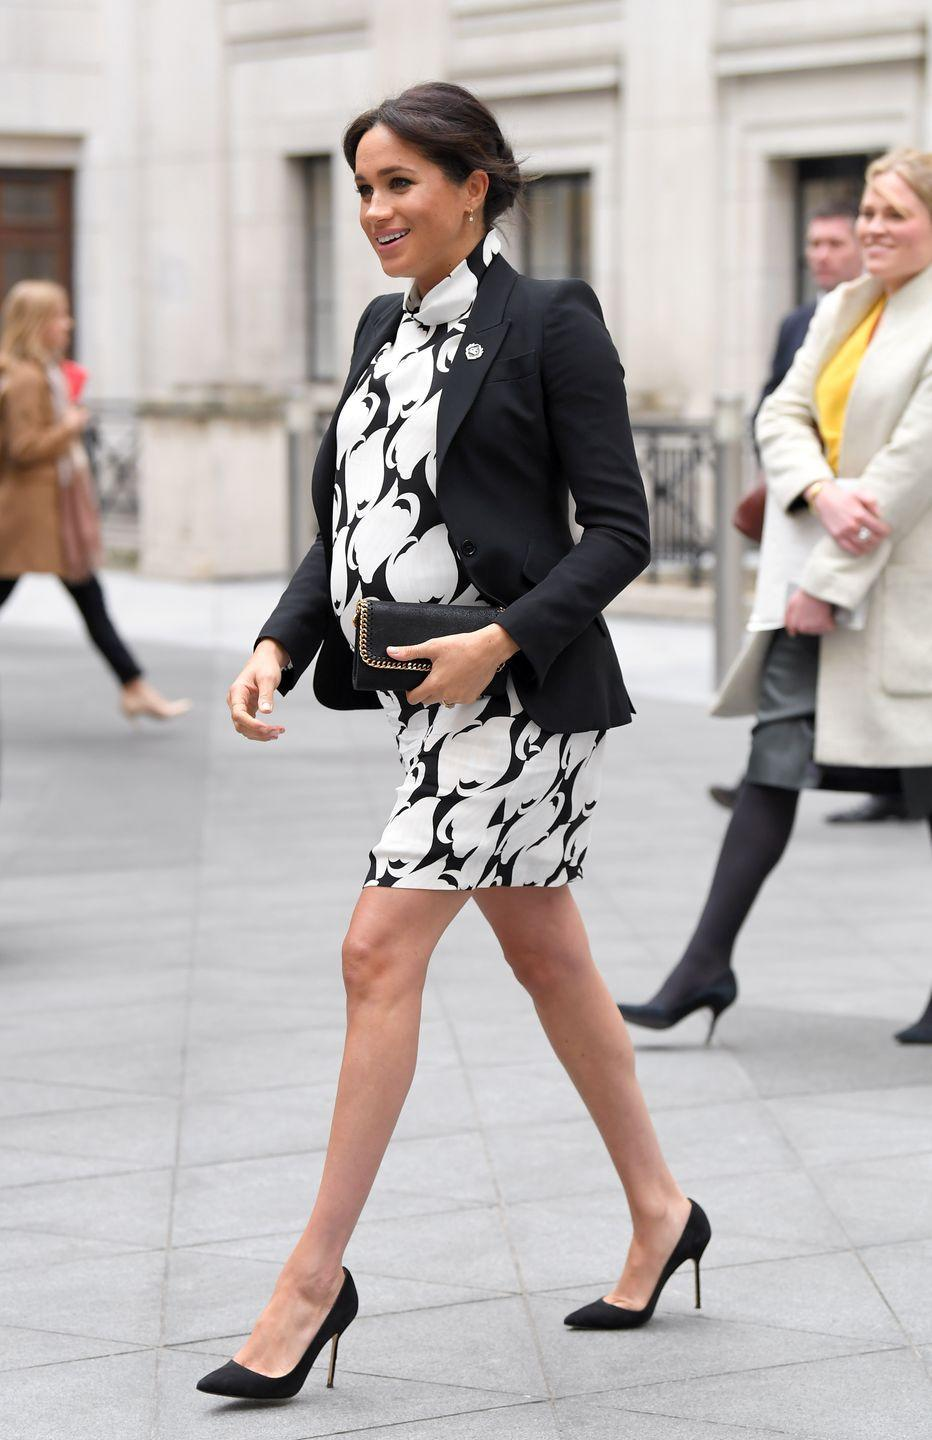 <p>In March 2019, Markle paired a classic black blazer with a black and white dress during an appearance while pregnant with baby Archie. </p>